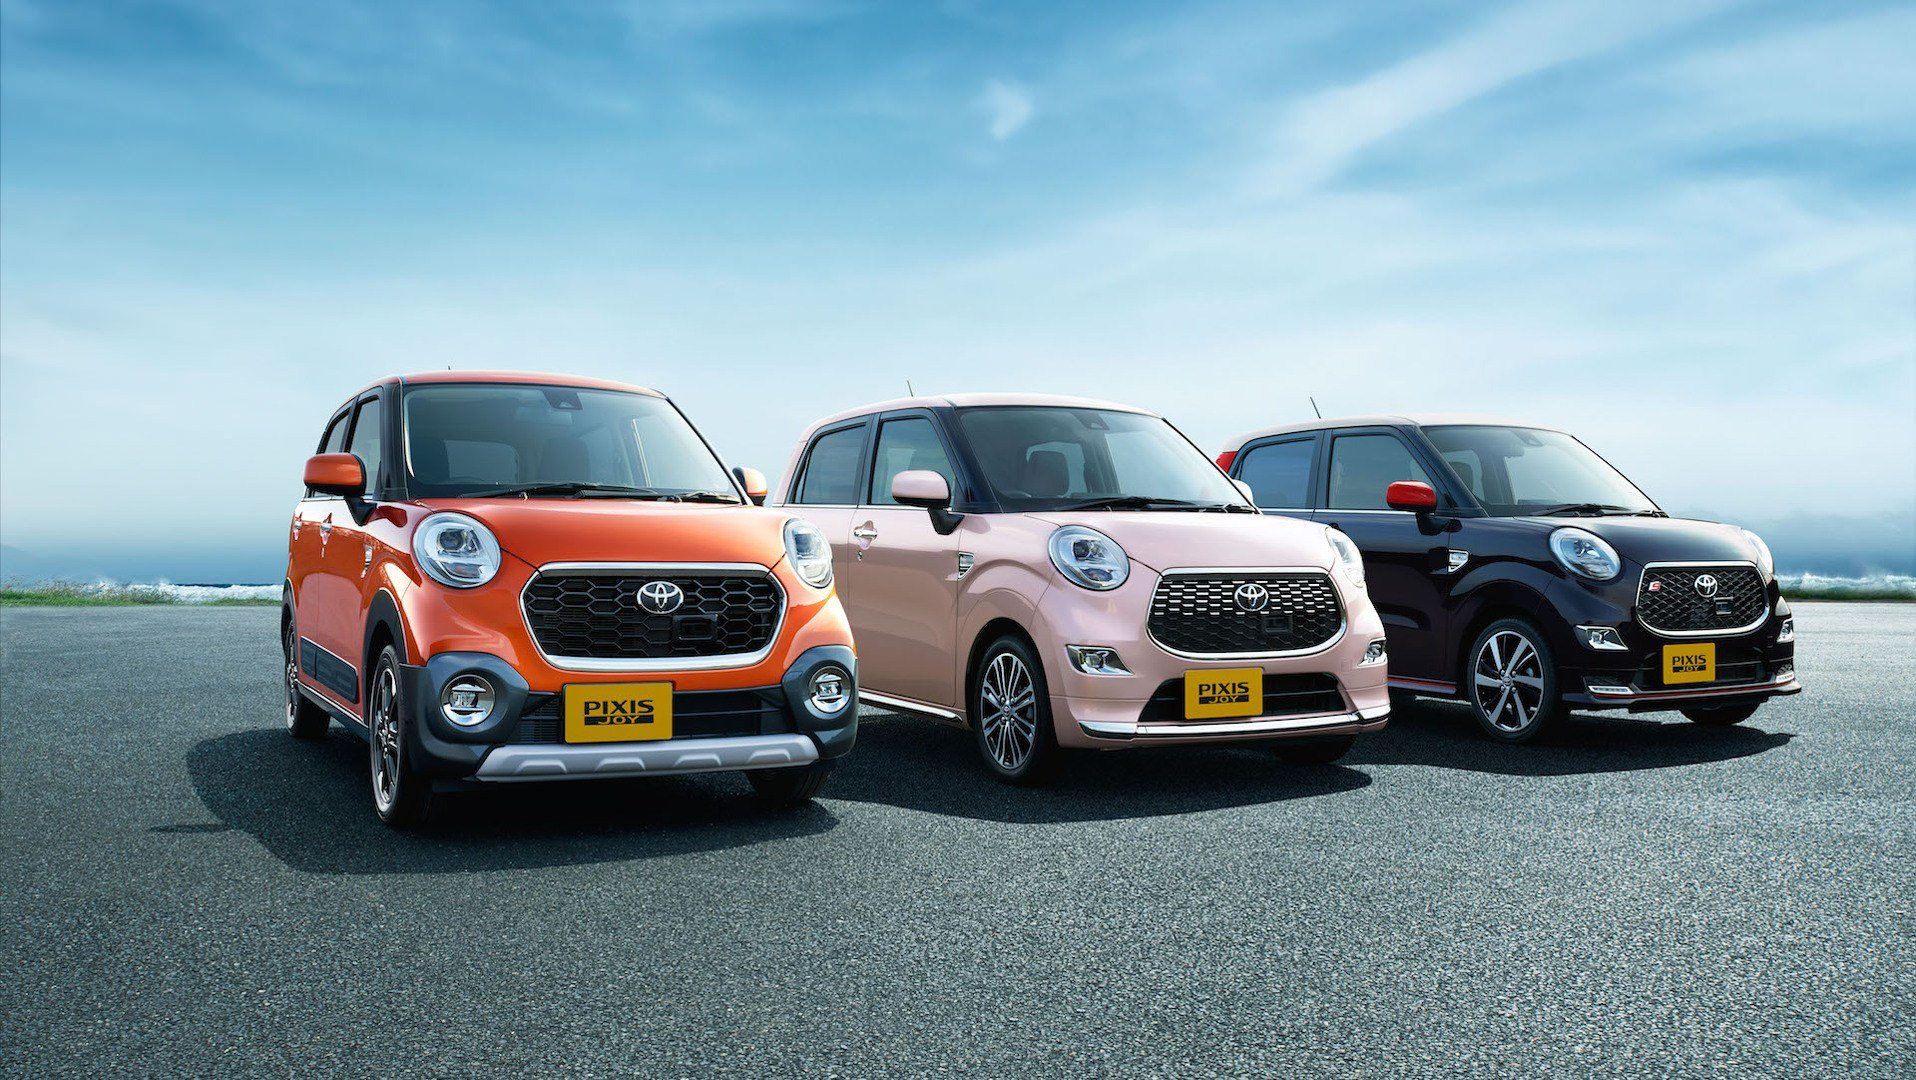 Latest Toyota Launches New Pixis Joy Mini Car In Japan Free Download